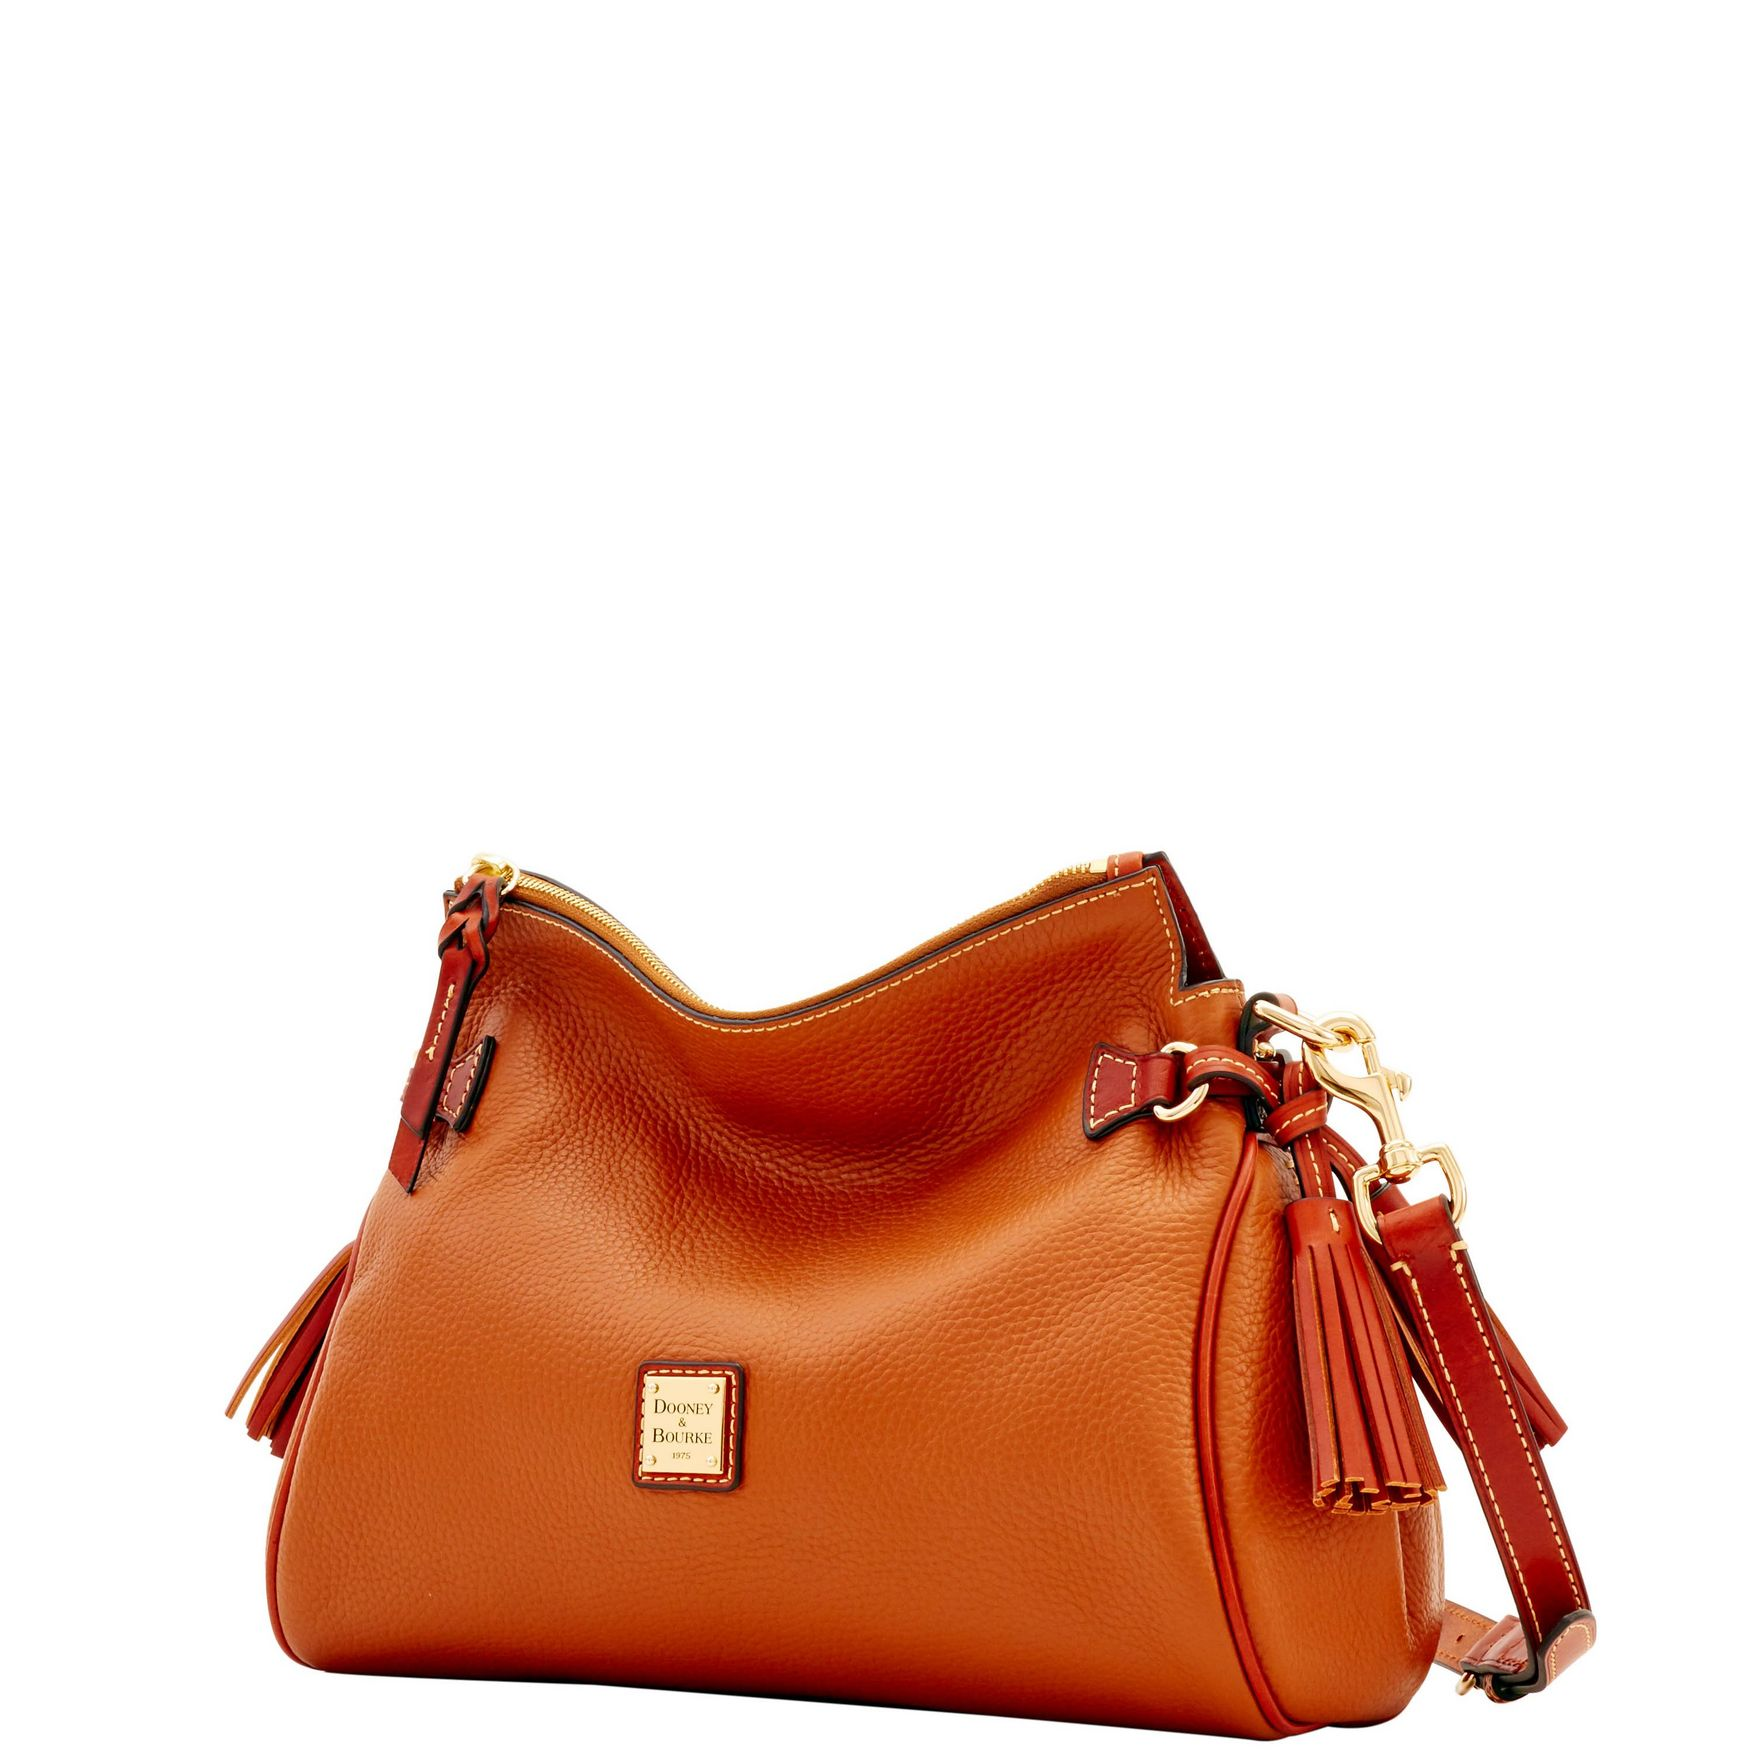 Dooney-amp-Bourke-Pebble-Grain-Medium-Zip-Crossbody-Shoulder-Bag thumbnail 16